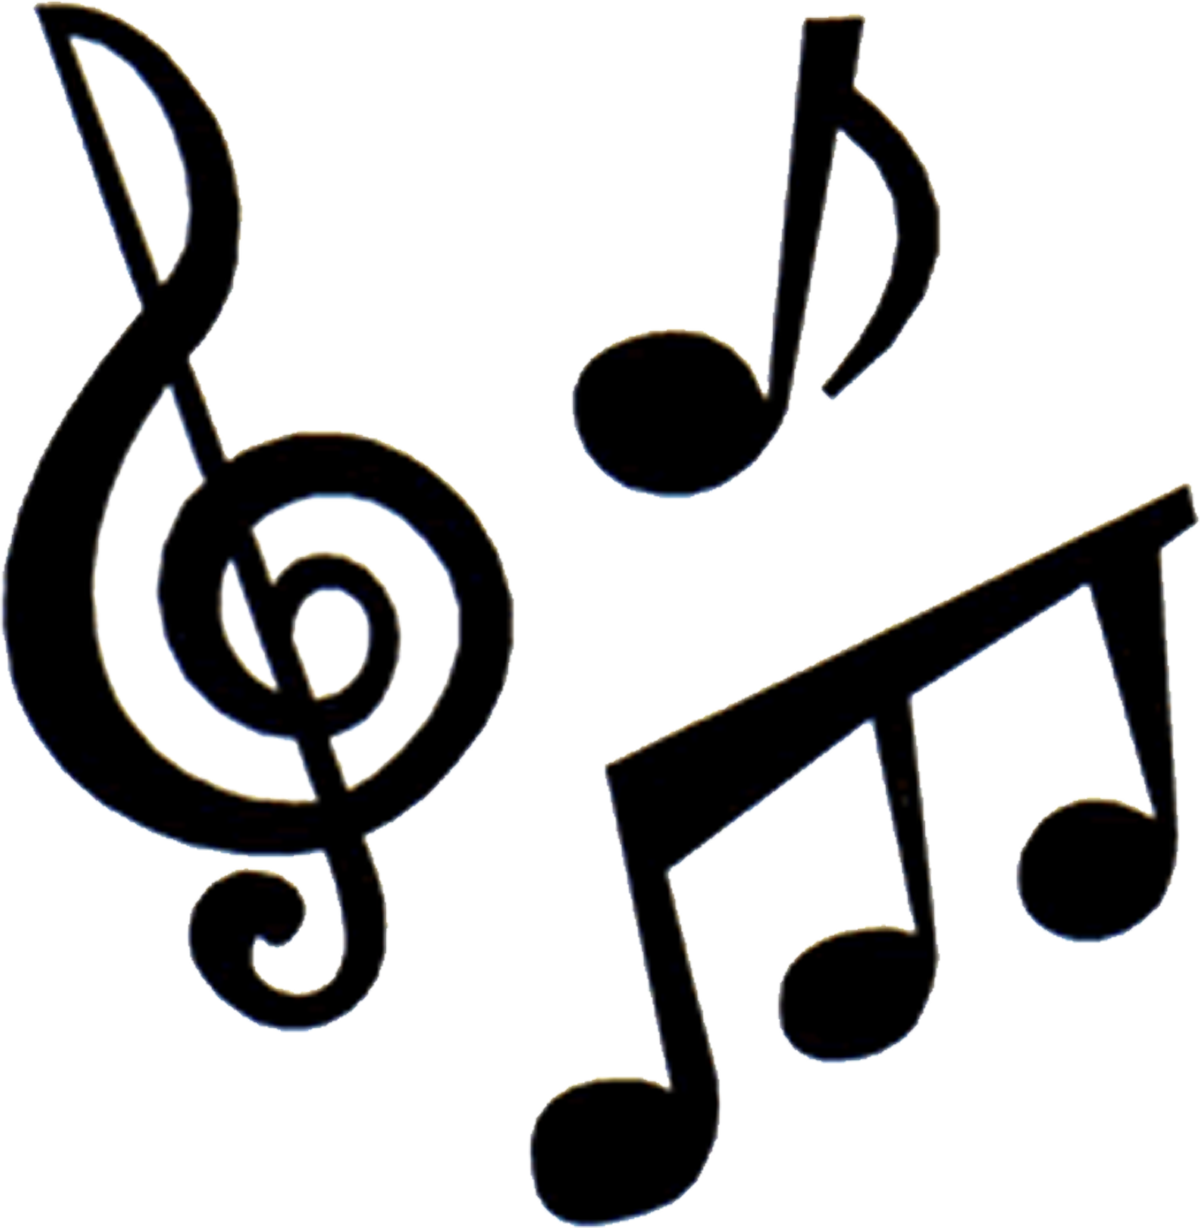 Band rock music clipart free clipart images image #36767.